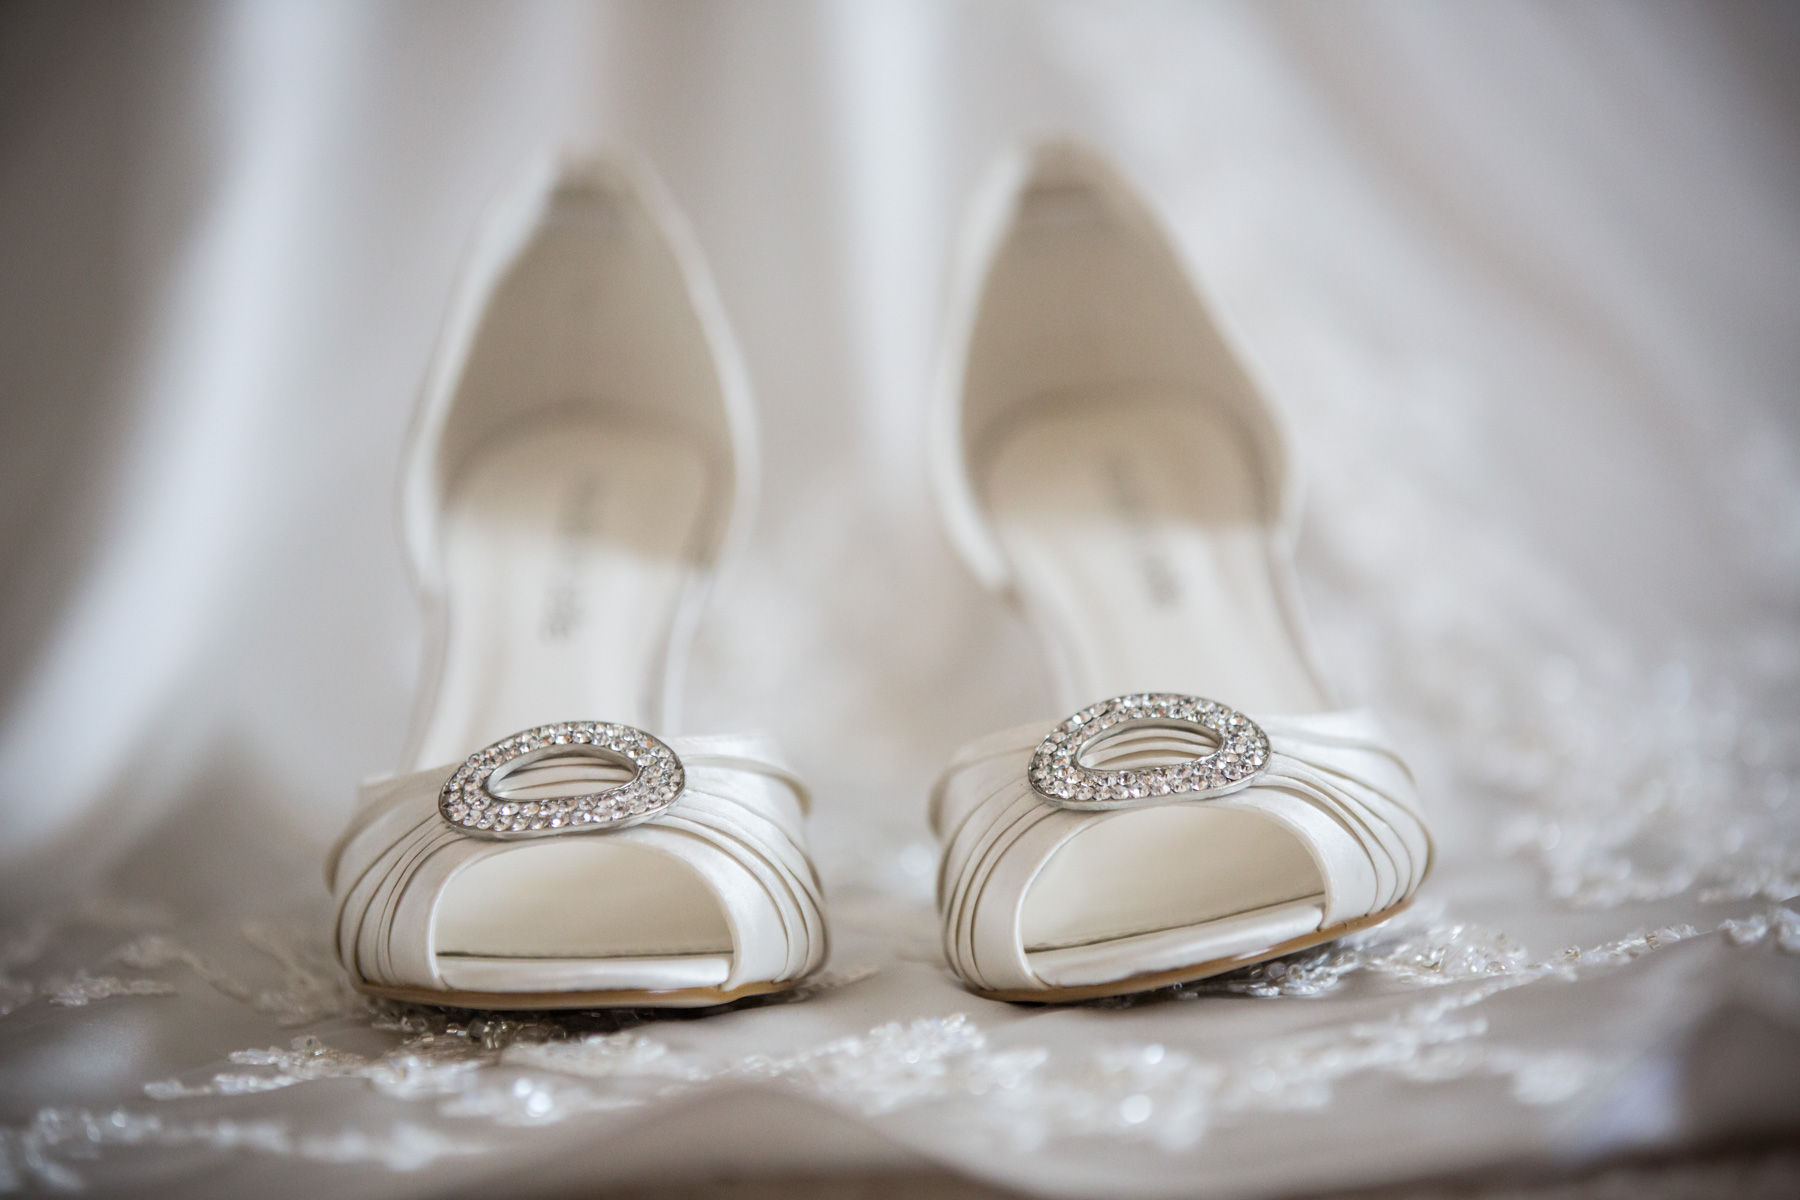 Sussex Wedding Photography at Buxted Park Hotel by Richard Murgatroyd Photography